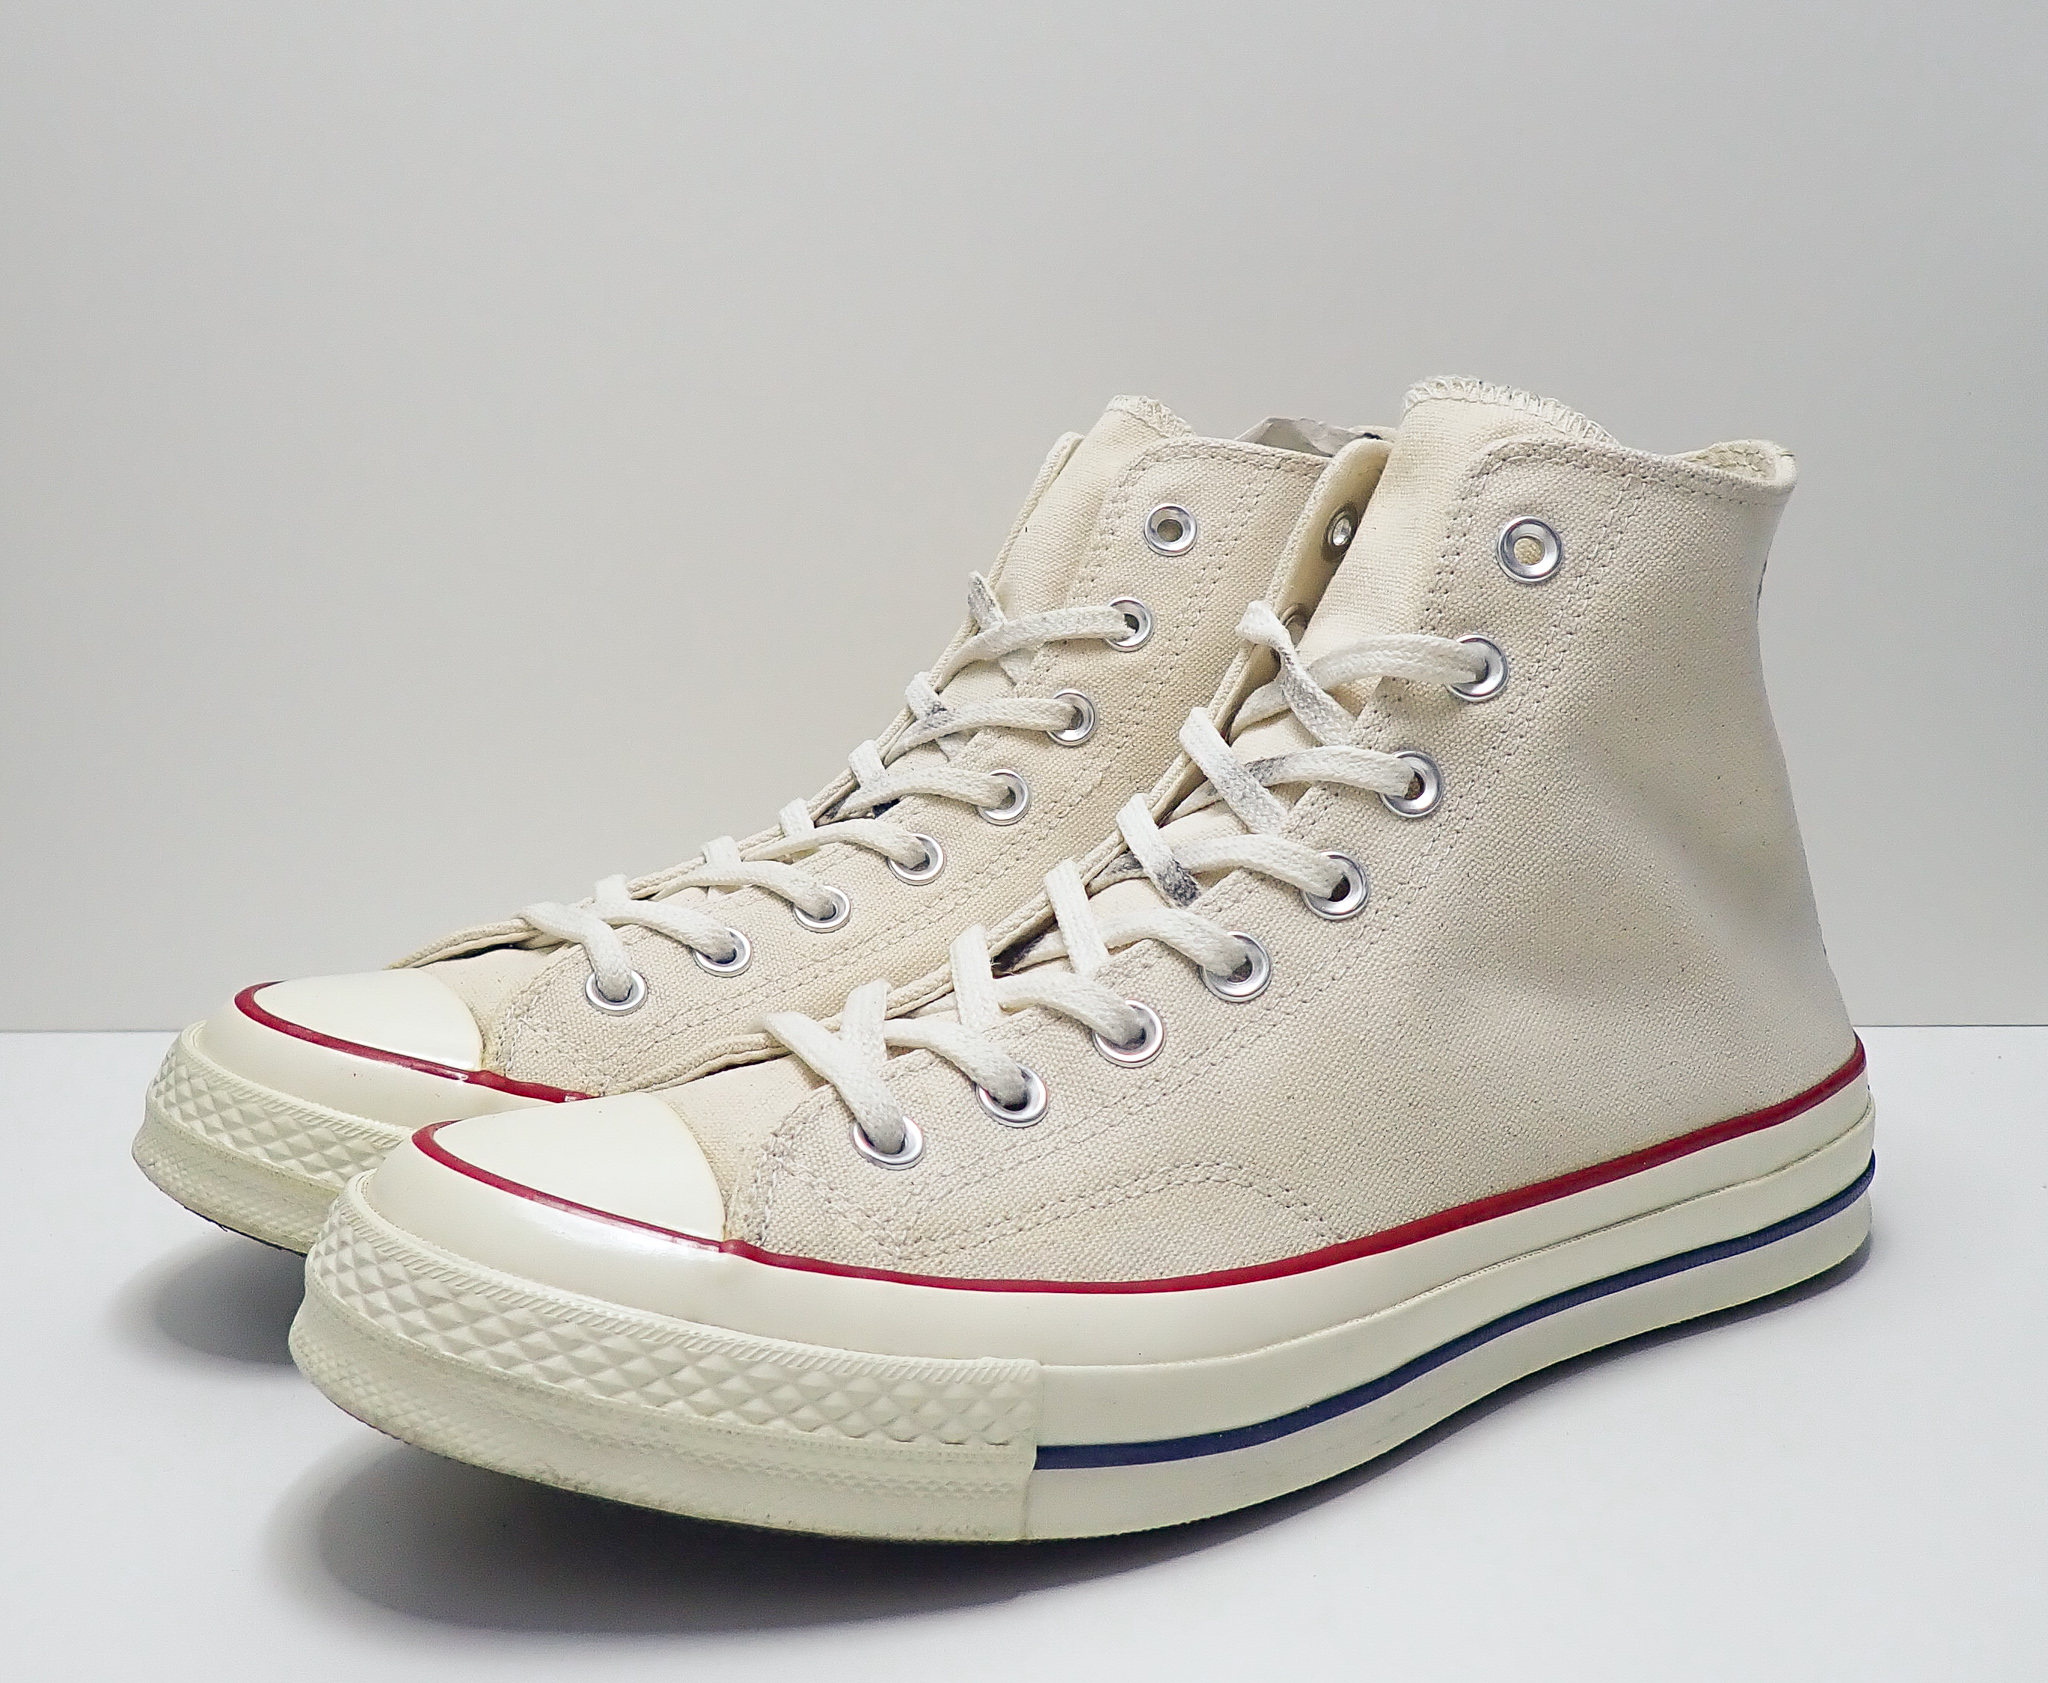 Converse All Star Chuck Taylor 70s